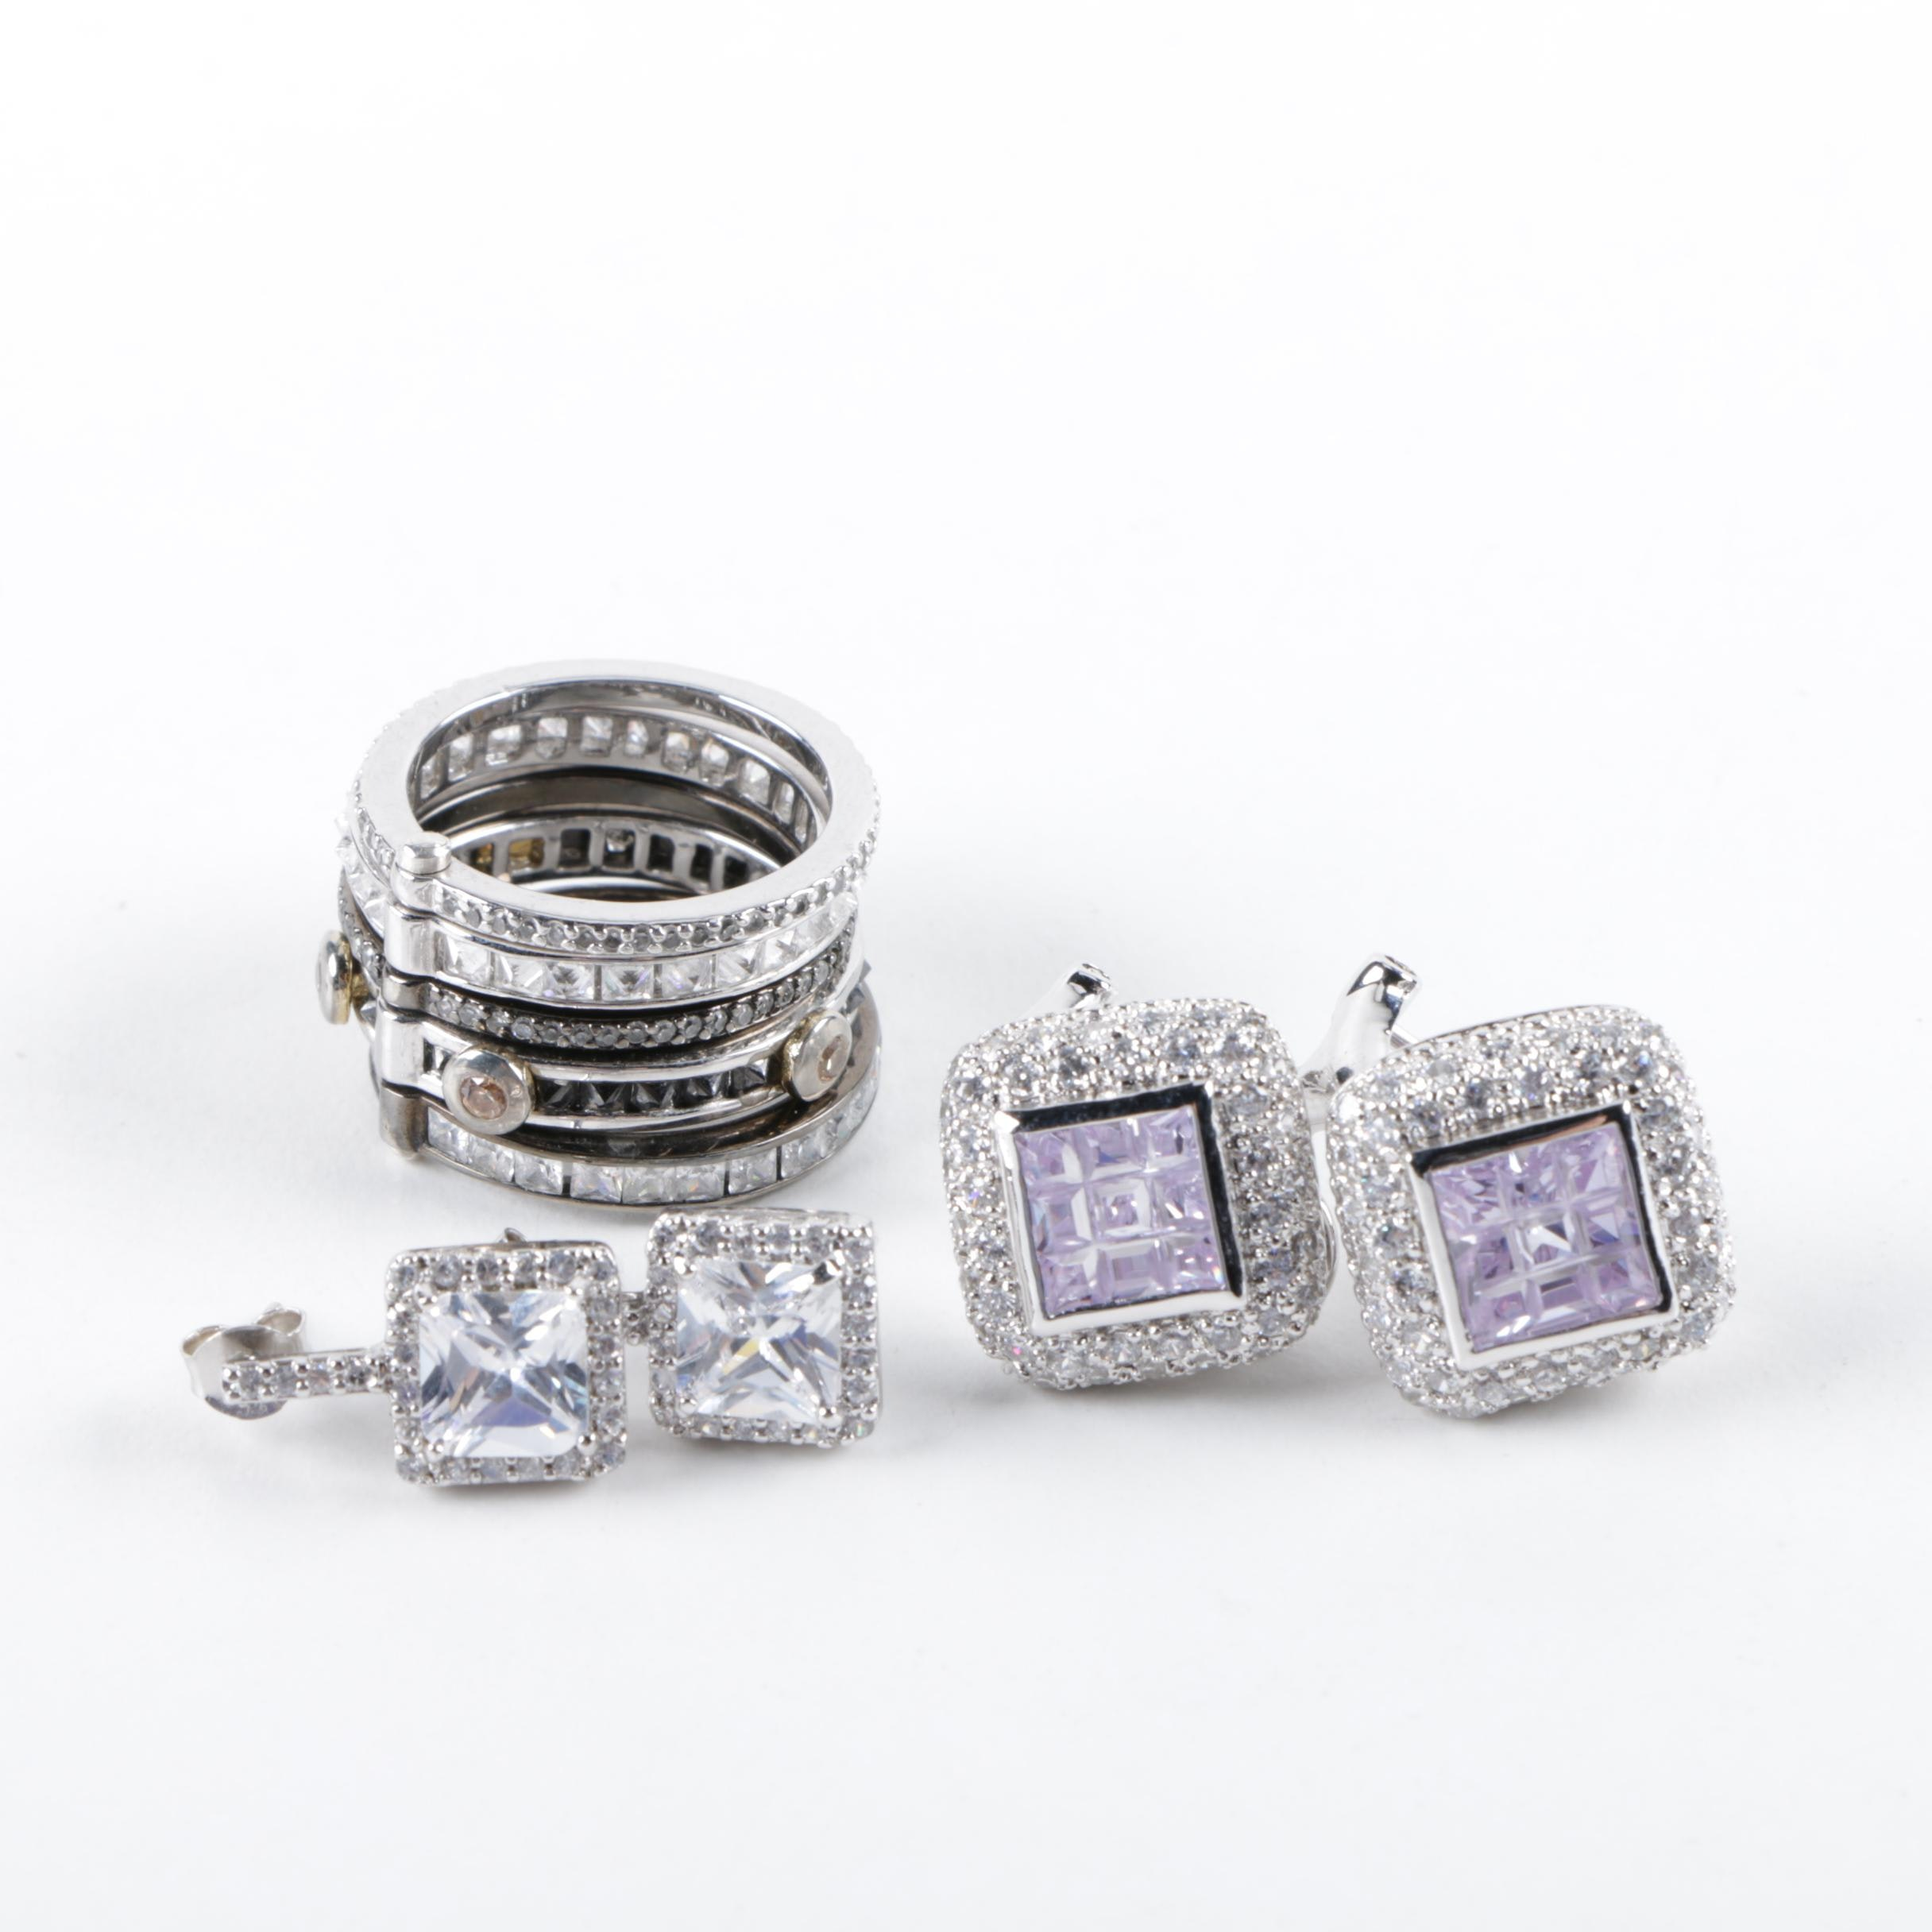 Sterling Silver Jewelry Assortment Including Cubic Zirconia